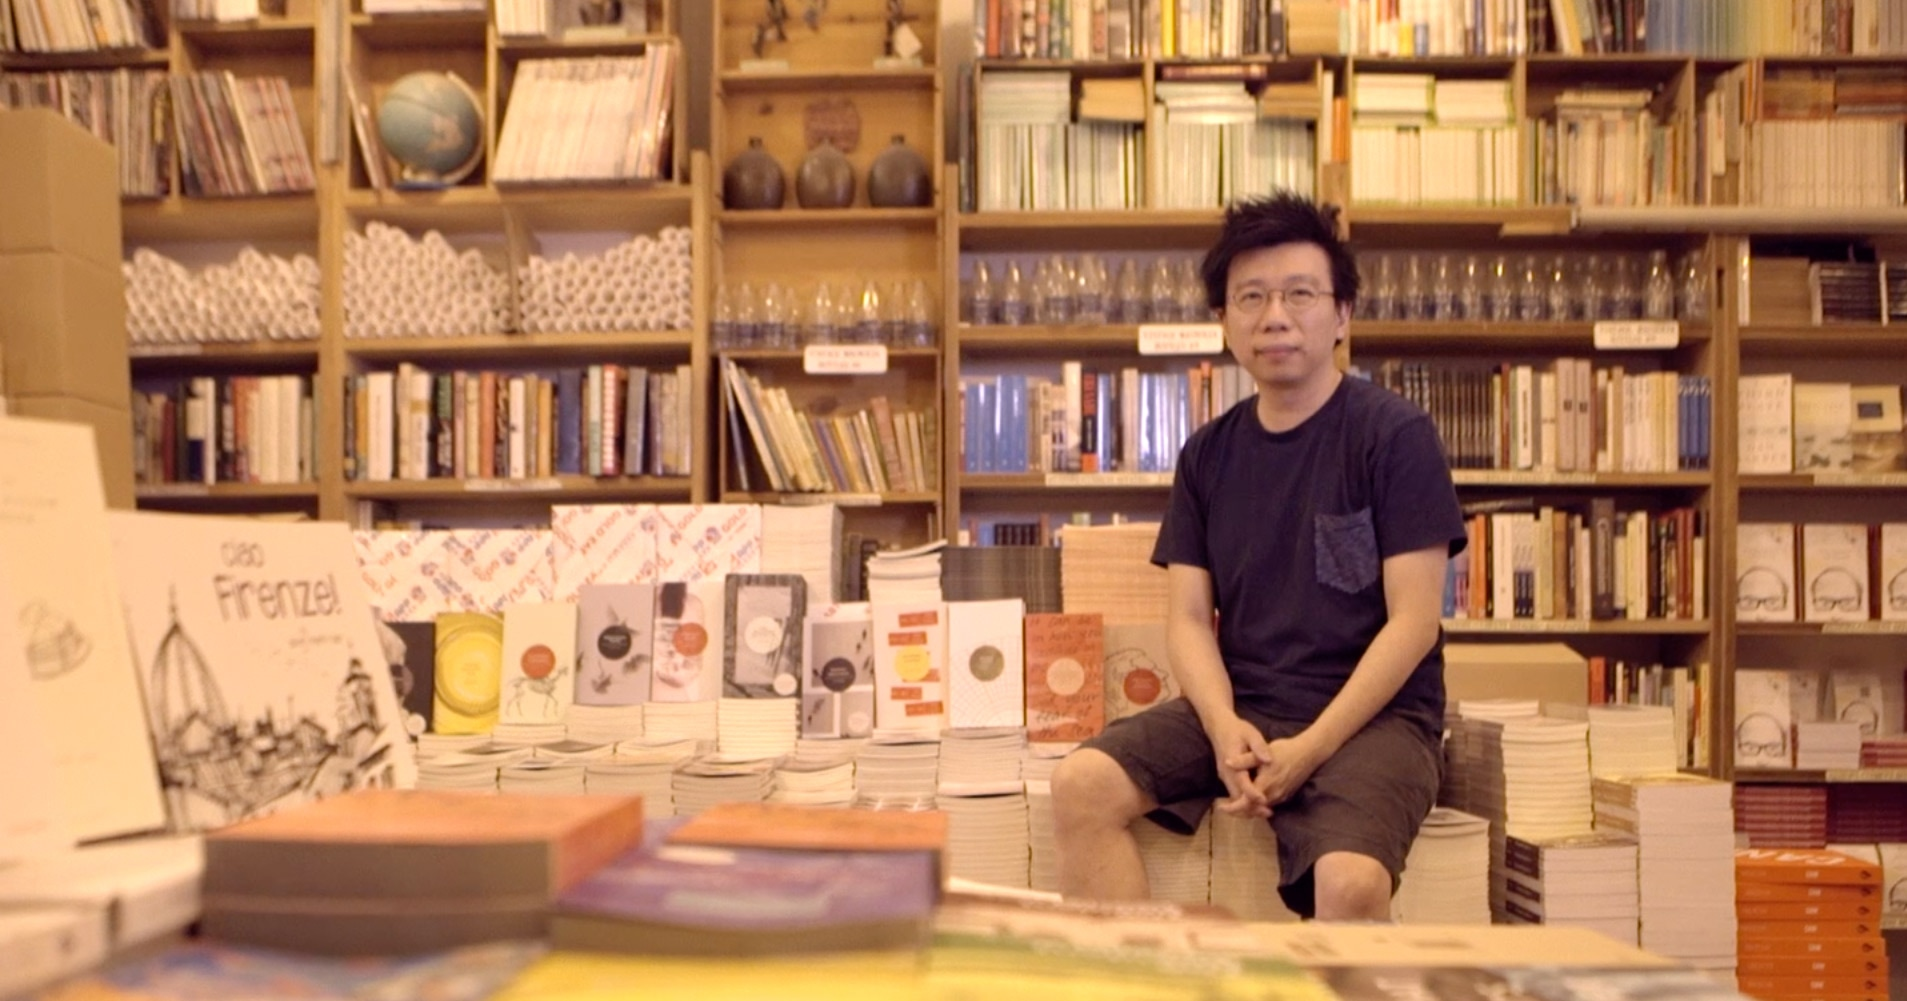 Kenny Leck, local designer, singaporean, books actually, book store, tiong bahru insider, keppel land, highline residences